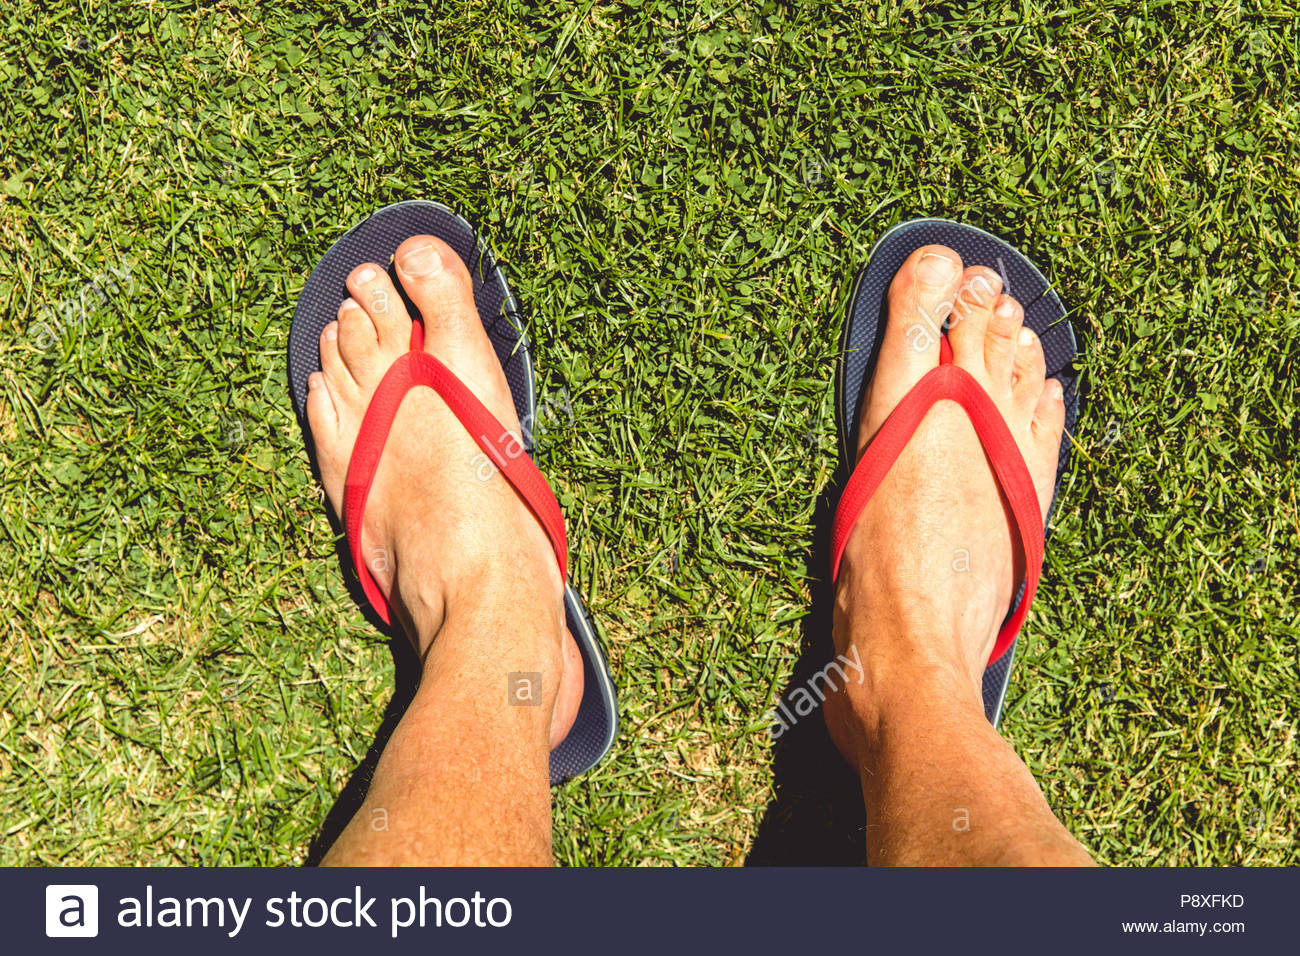 150fa9d8f7b Man wearing flip flops on hot summer day with grass background - Stock Image